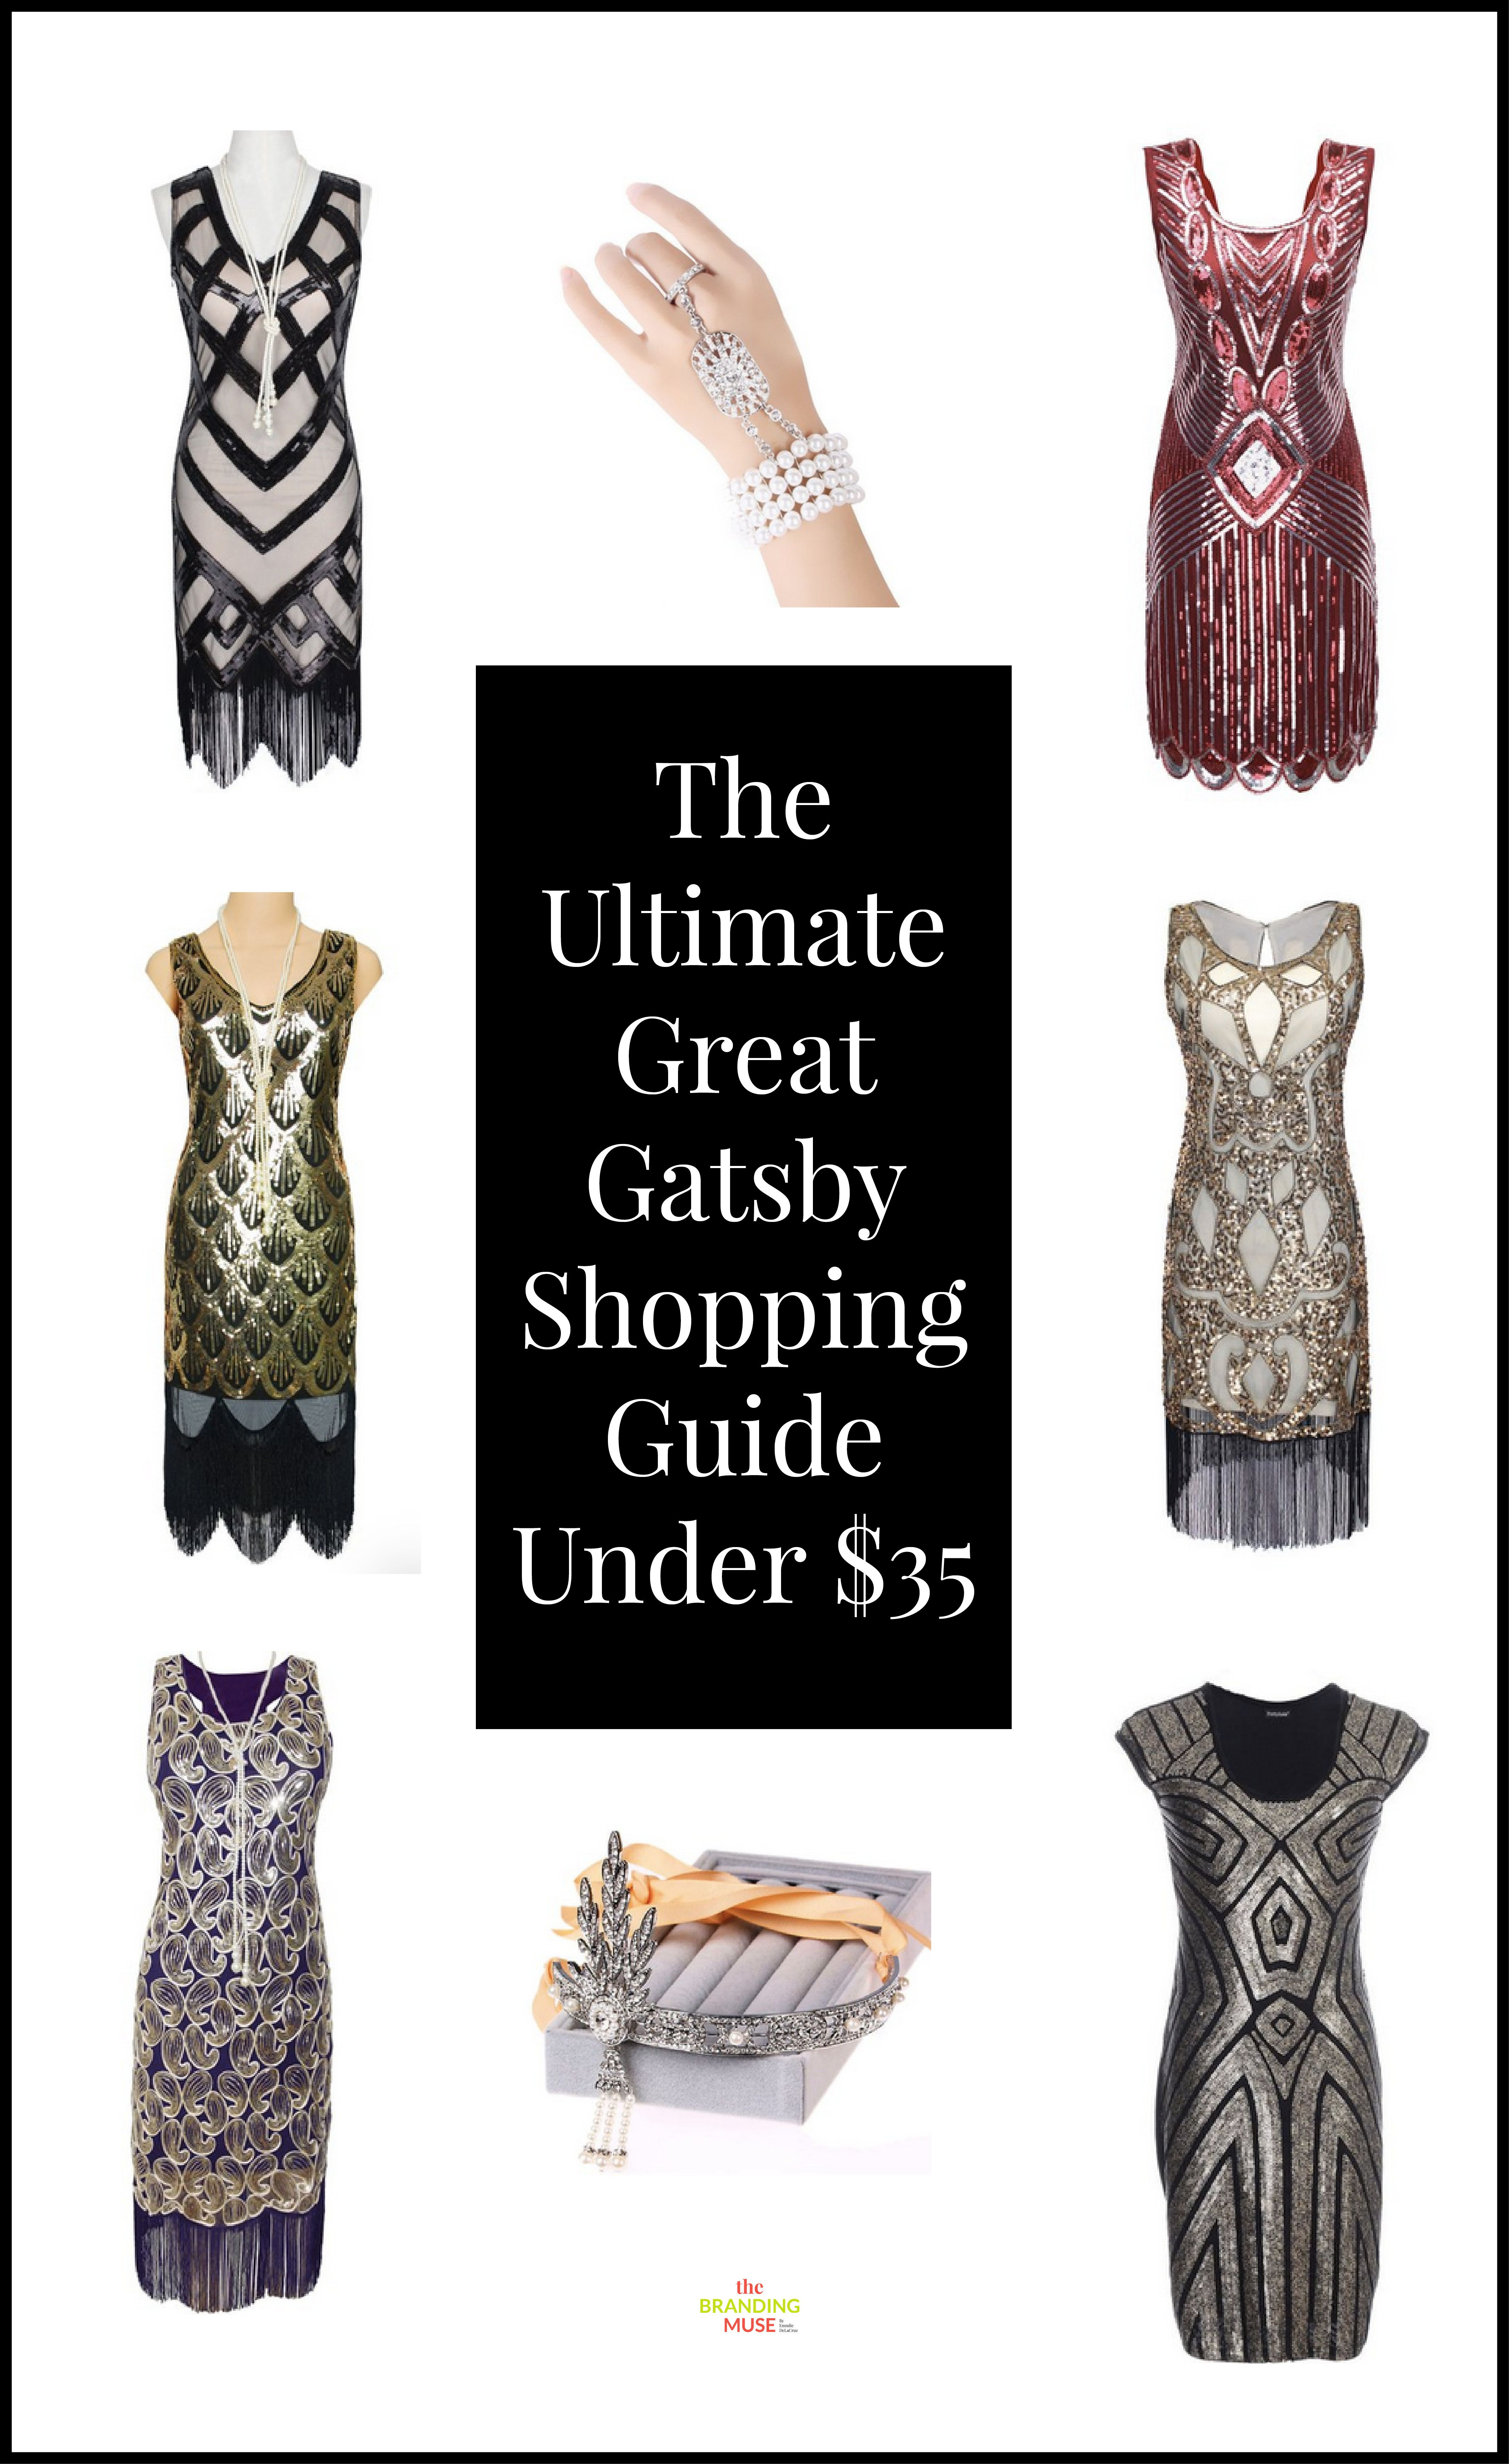 6bc470c36 Great Gatsby dresses, accessories and headpieces all under $35. These ideas  are also perfect for the roaring 20s or any flapper era kinds of events and  ...